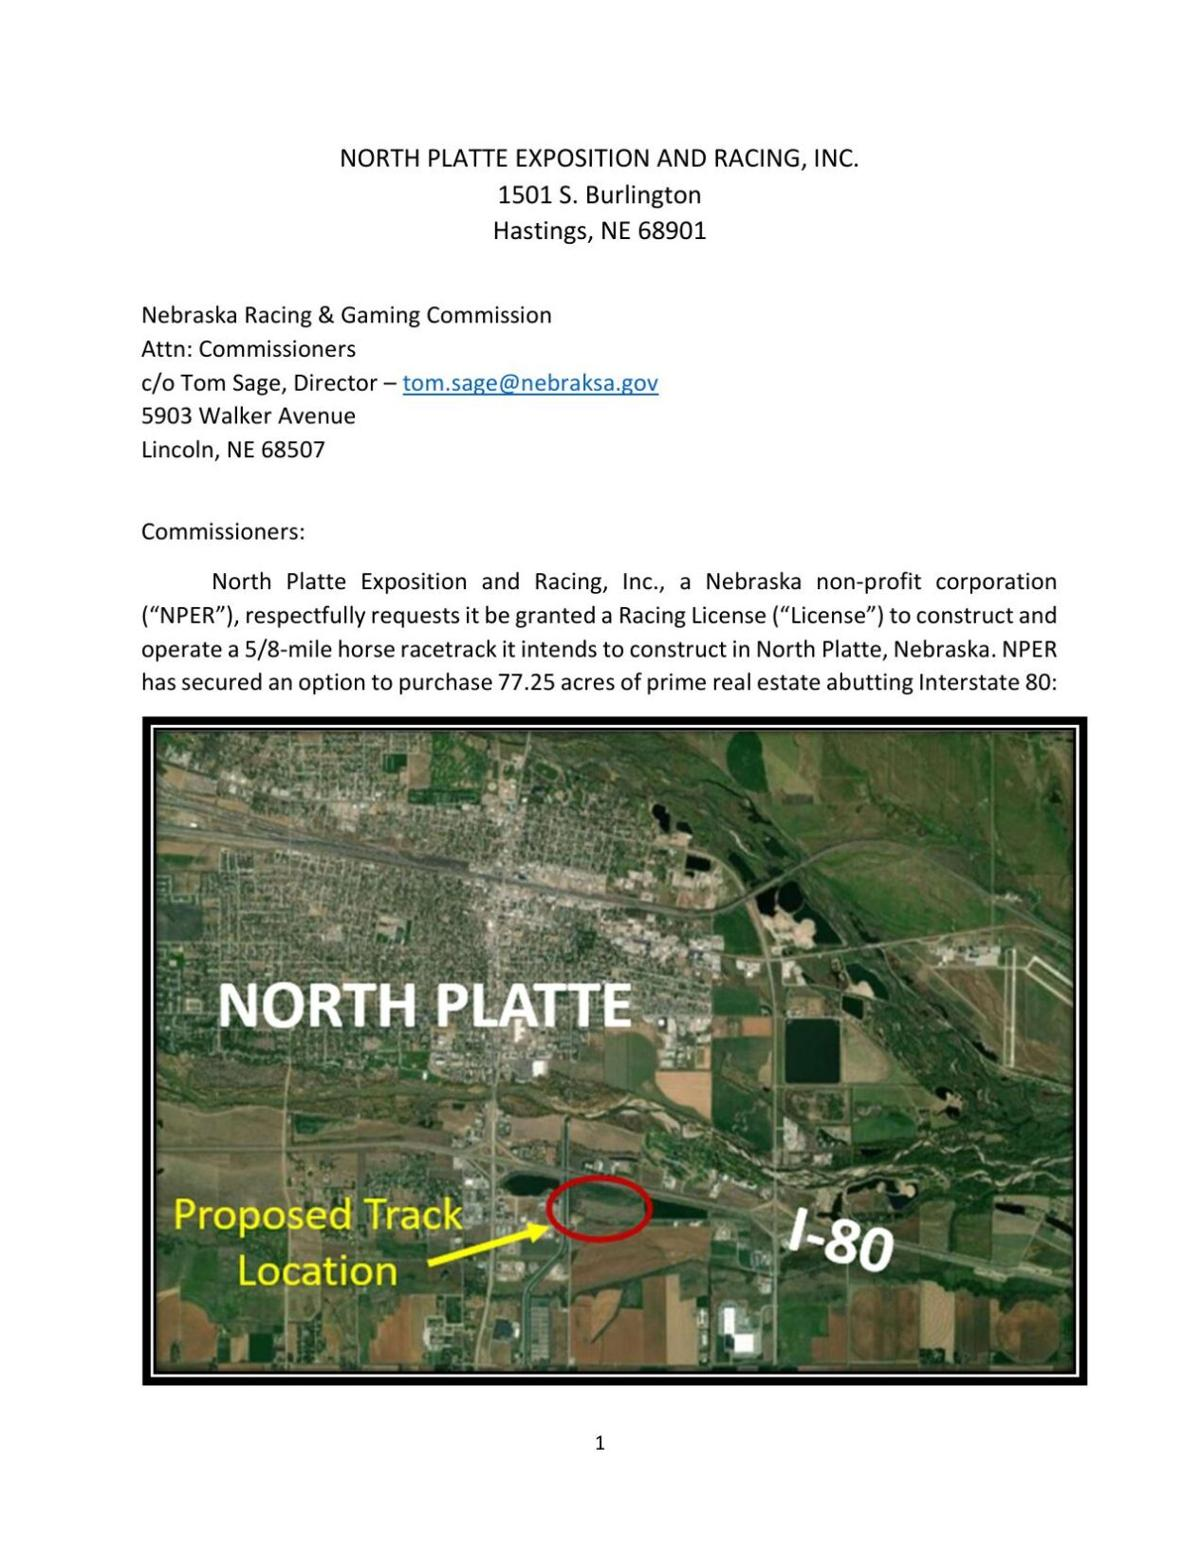 NP Exposition and Racing Inc.'s race track proposal